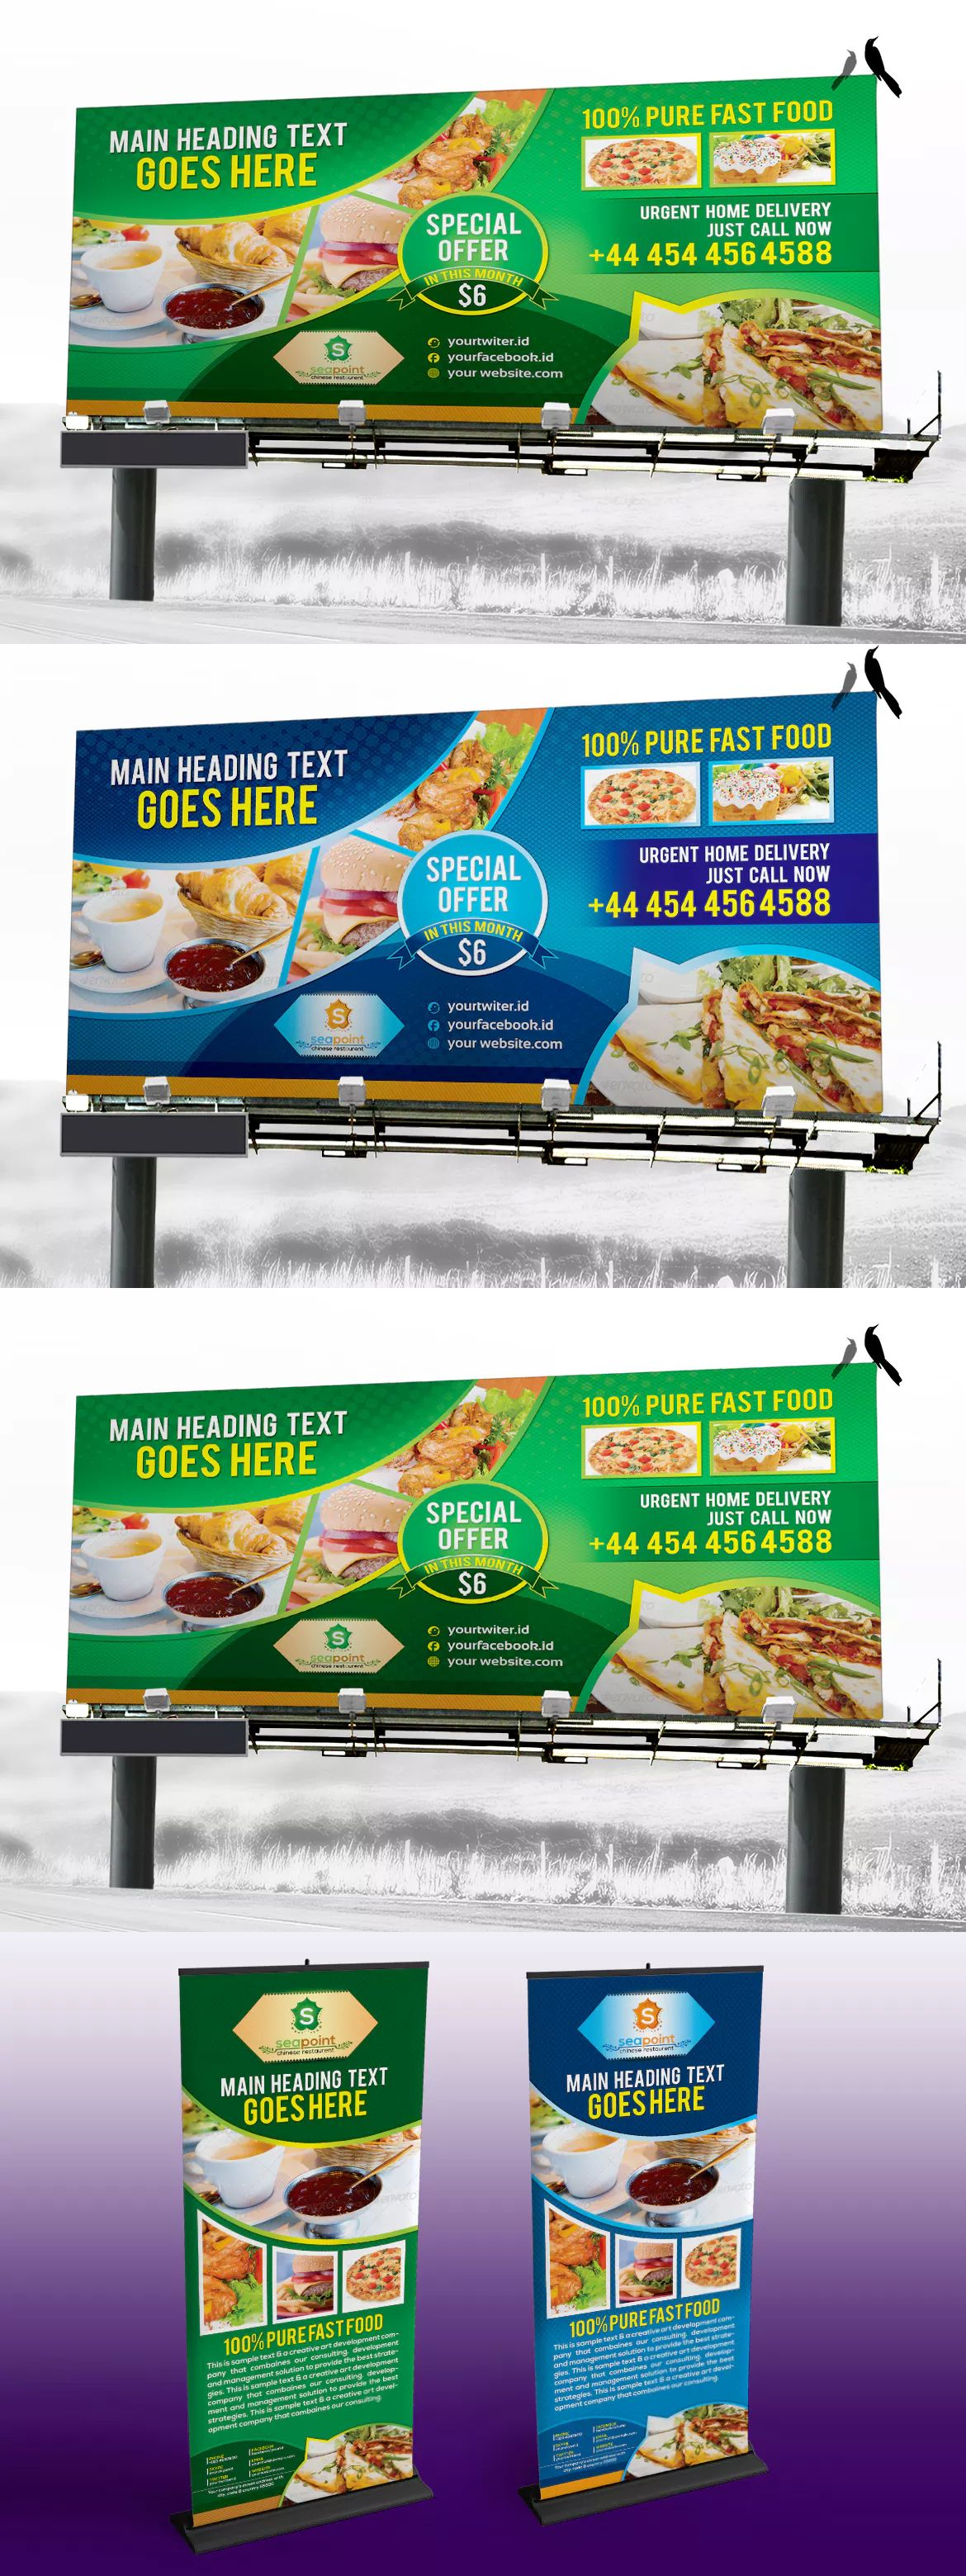 Fast Food Restaurant Signage Solution Pack Template PSD